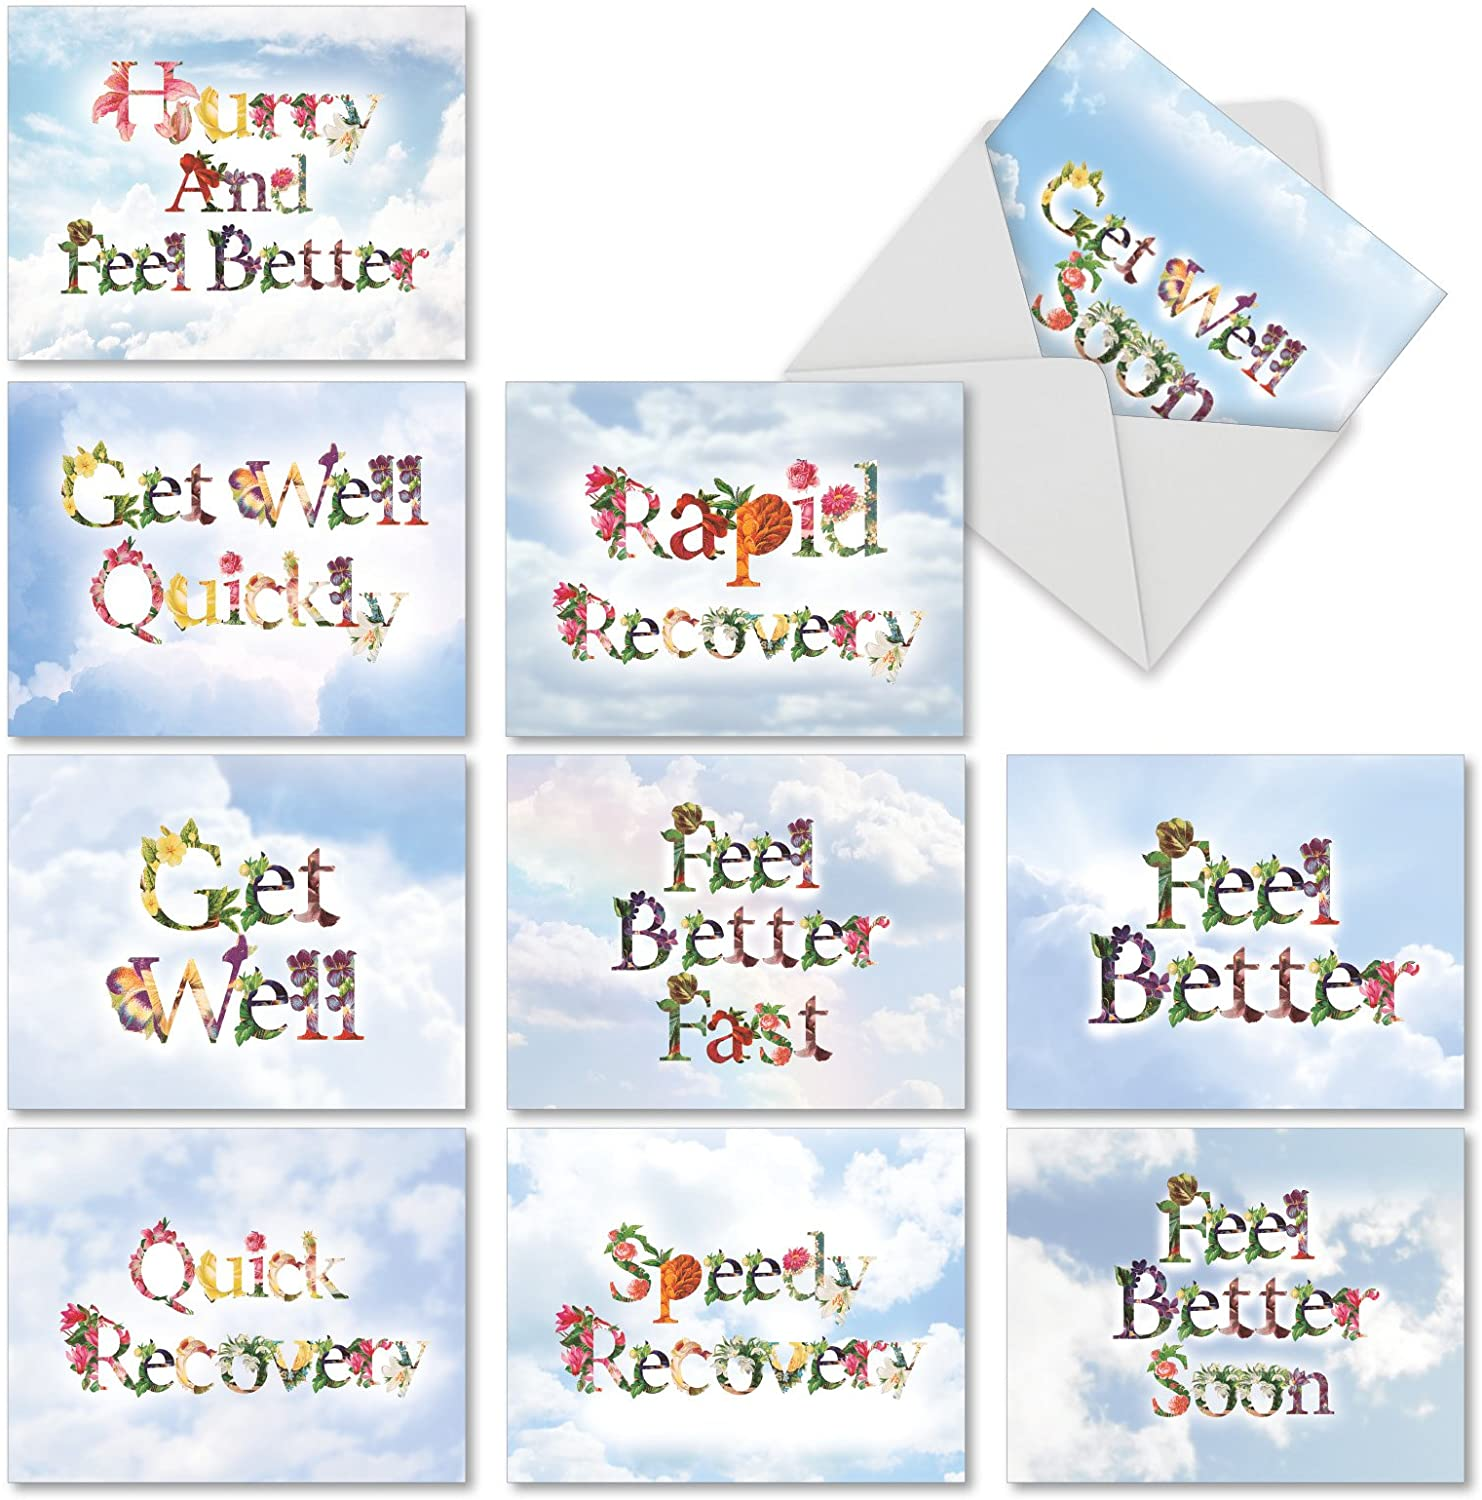 The Best Card Company - 10 Flower Get Well Soon Cards (4 x 5.12 Inch) - Floral Feel Better Assortment - Bunches of Well Wishes M2359GWG-B1x10